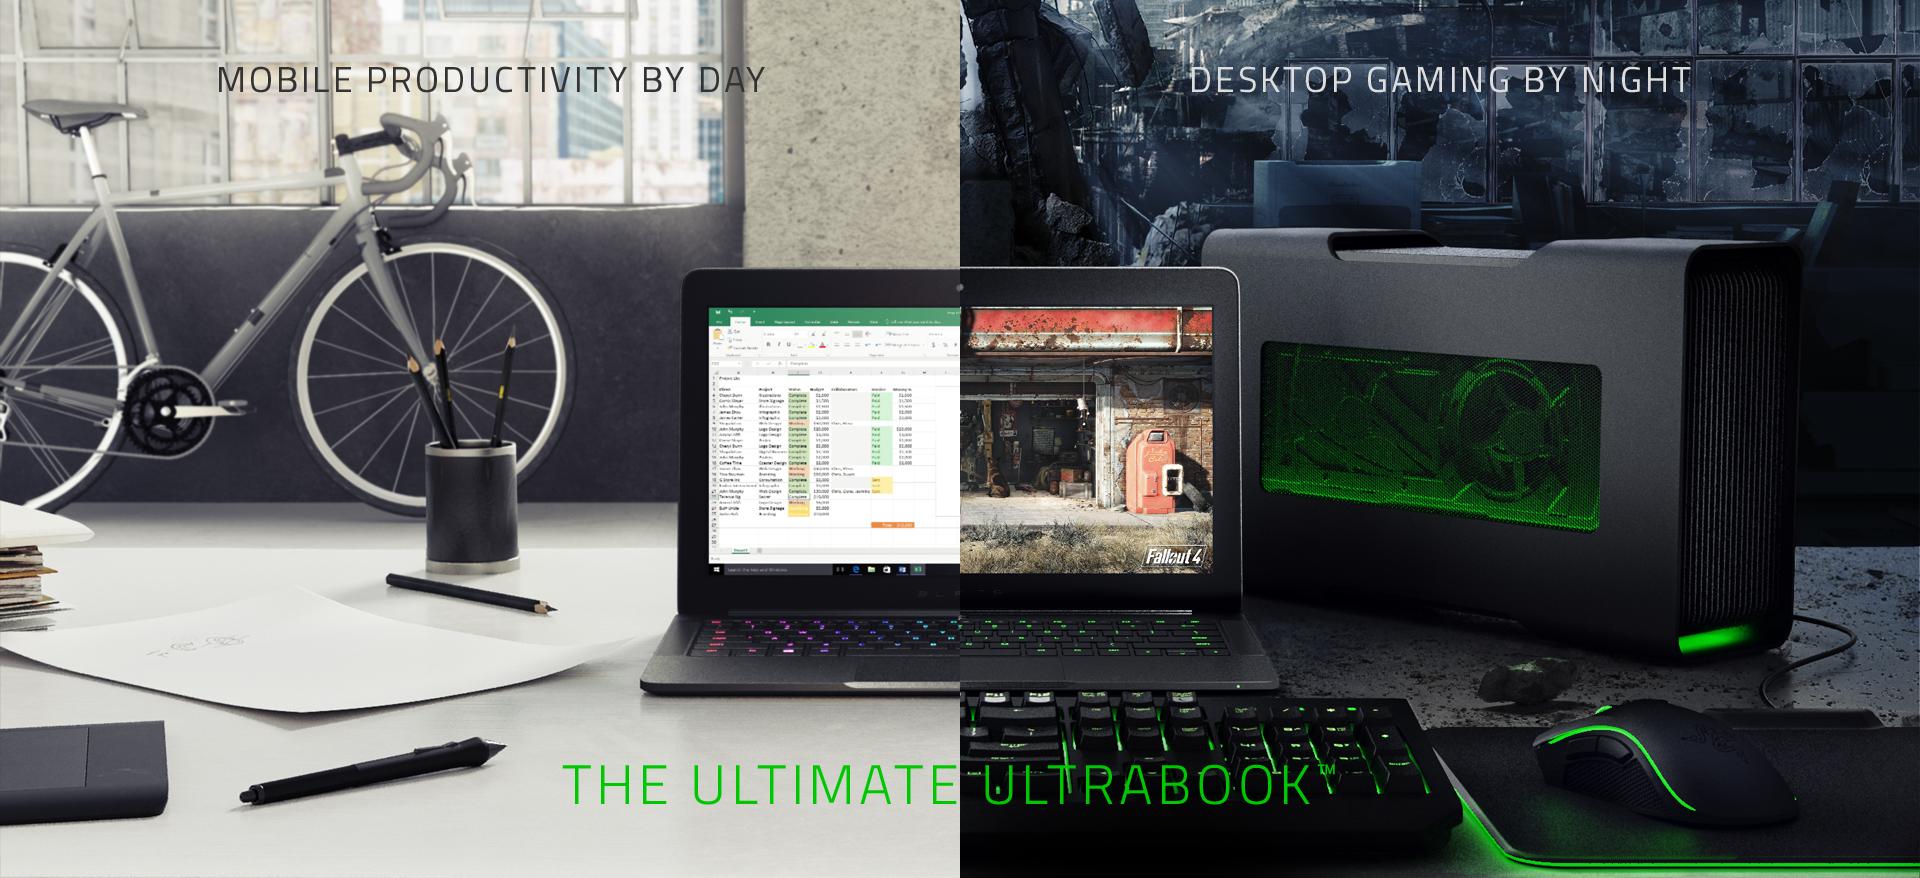 amd, radeon, razer, gpu, gaming, laptop, ultrabook, portable gaming, thunderbolt 3, amd xconnect, external graphics